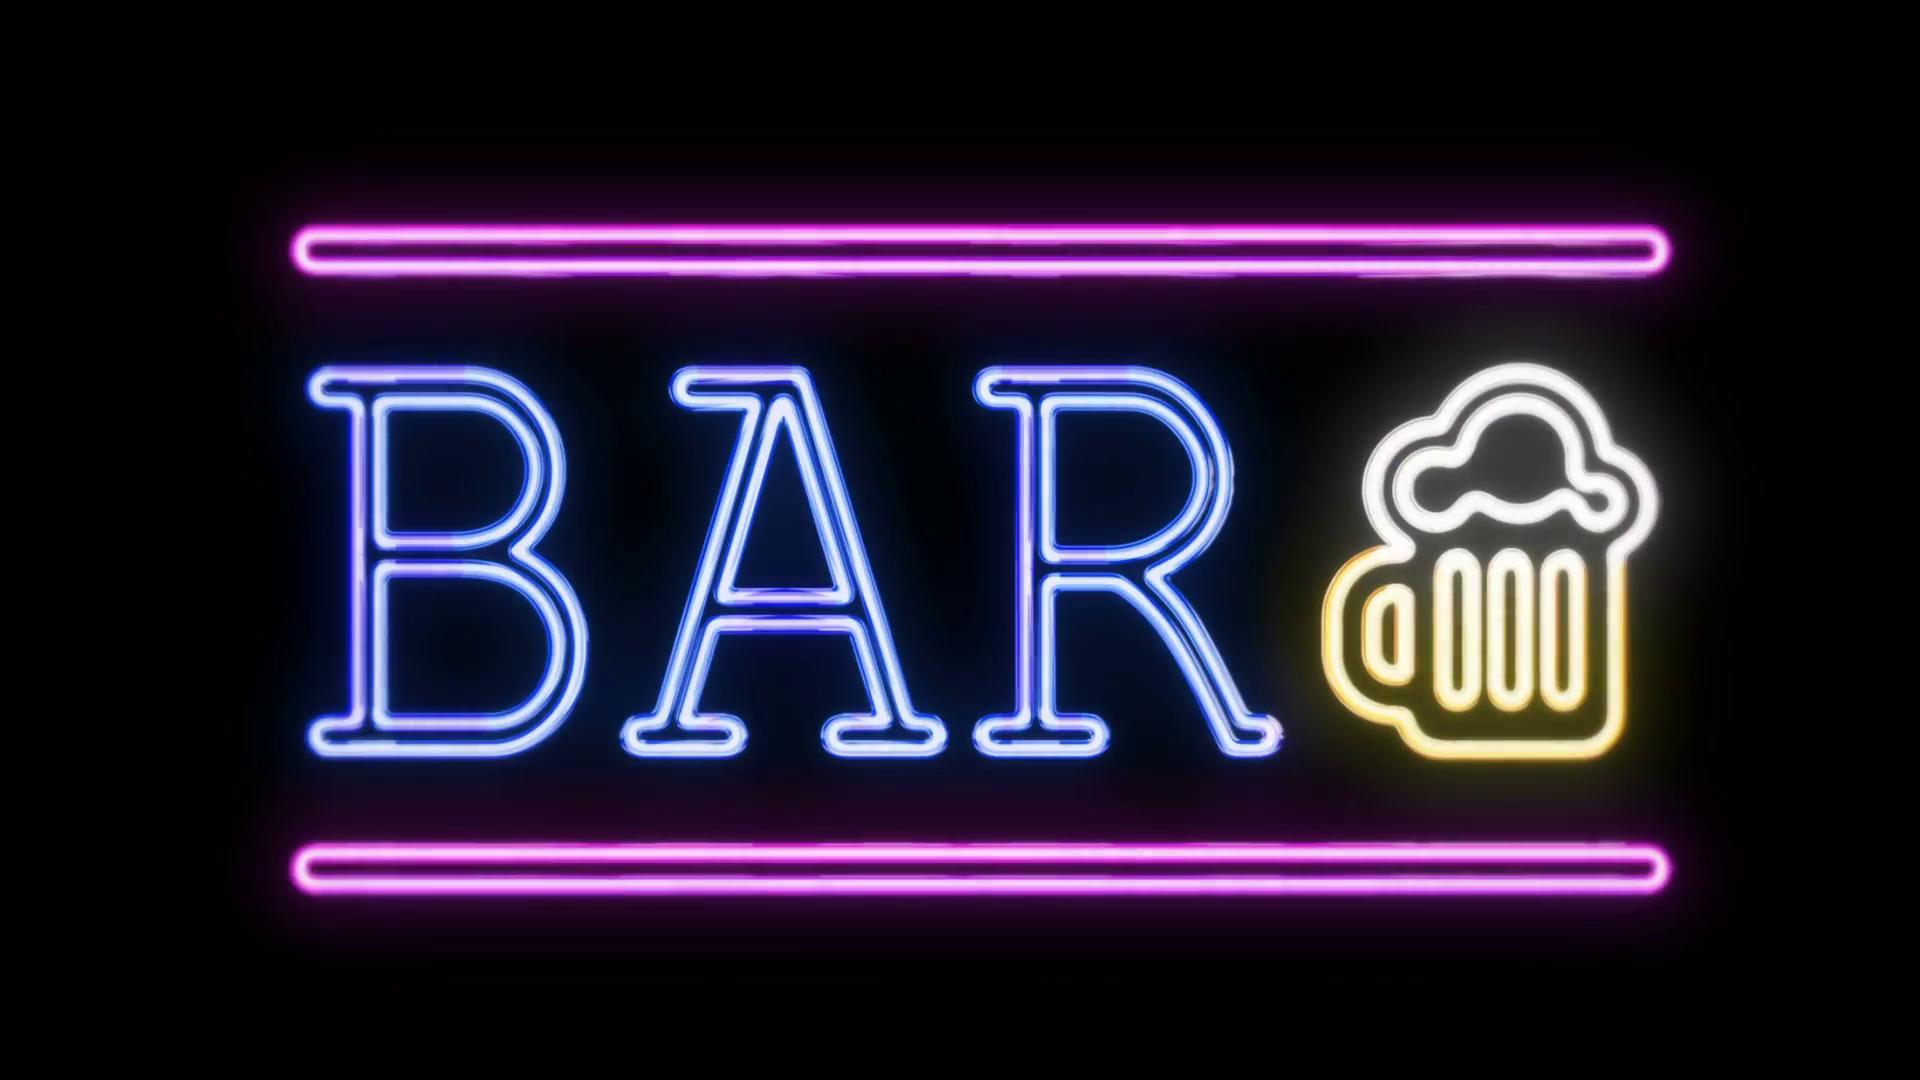 BAR Sign Neon Sign in Retro Style Turning On Stock Video Footage ...